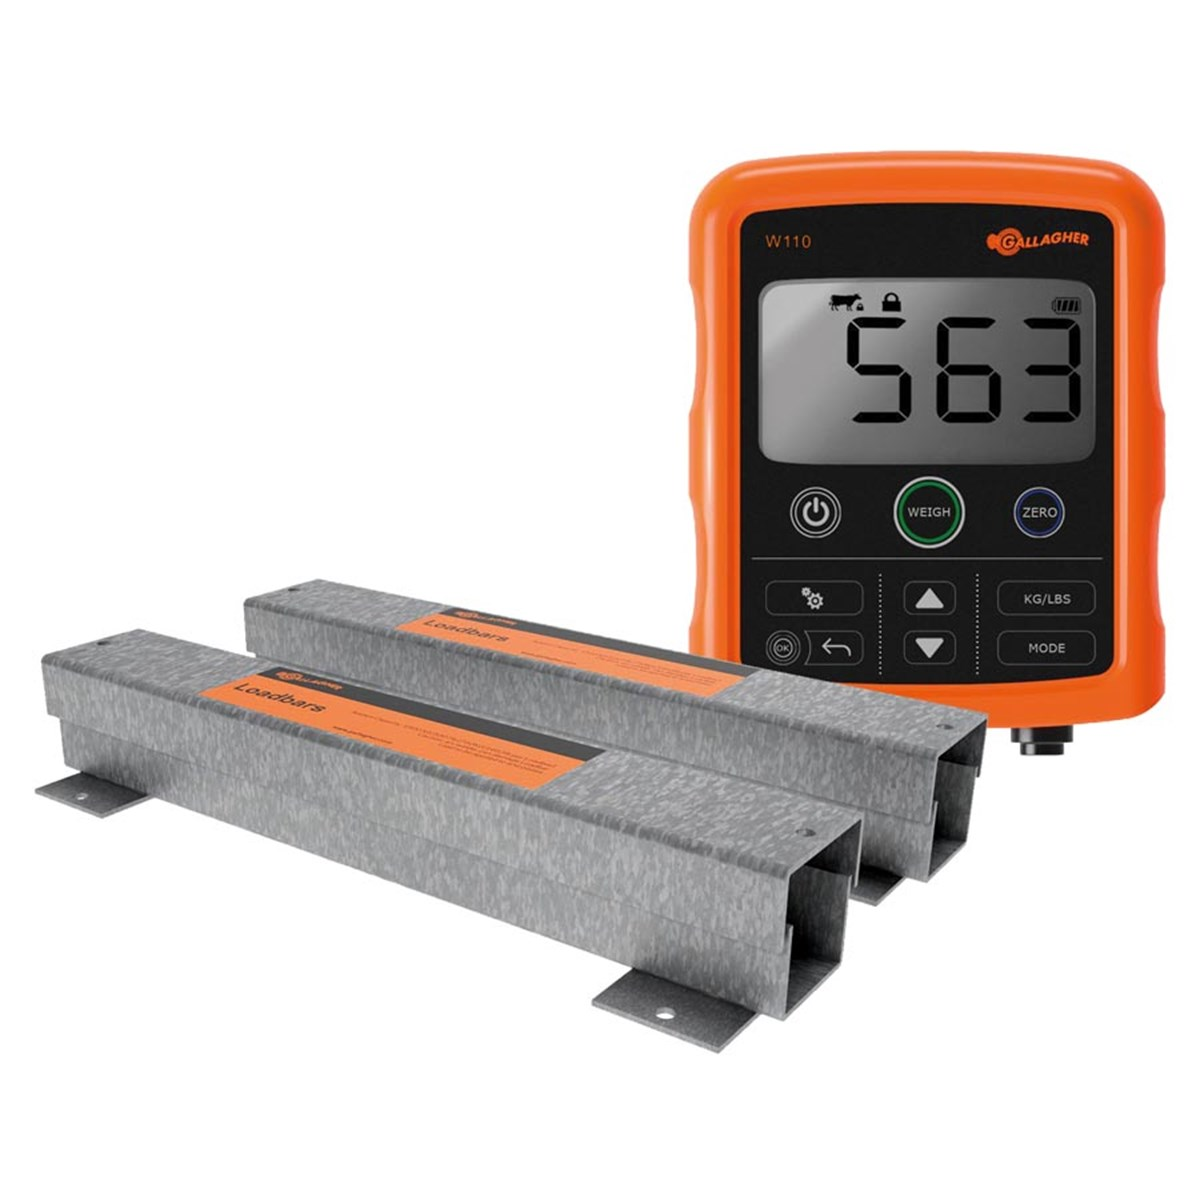 Aps quickweigh kit 580/w110